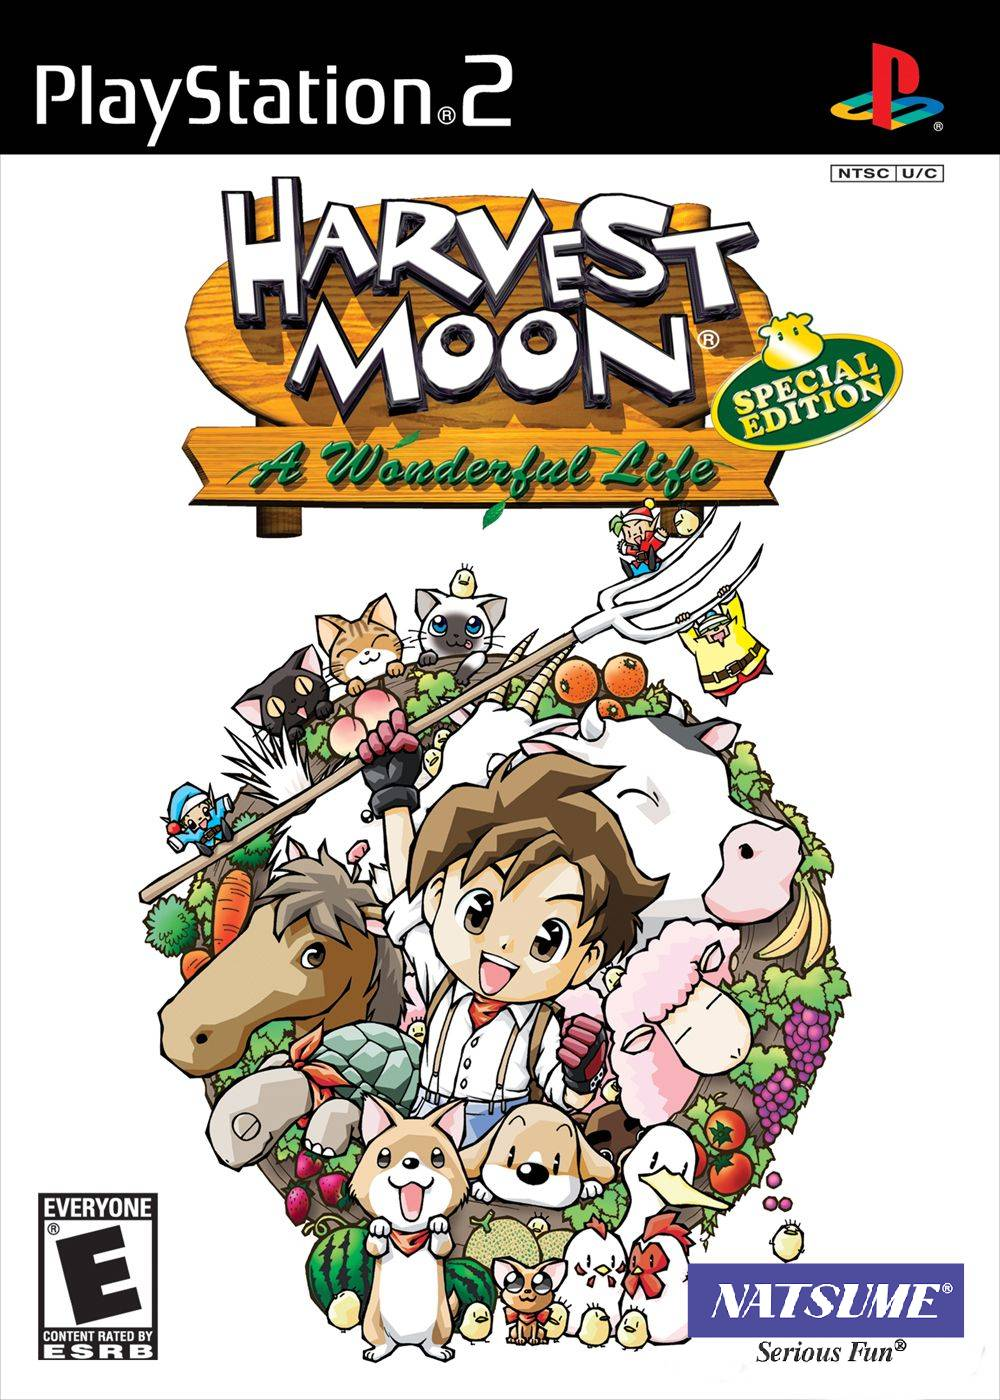 Harvest Moon: A Wonderful Life Special Edition | The Harvest